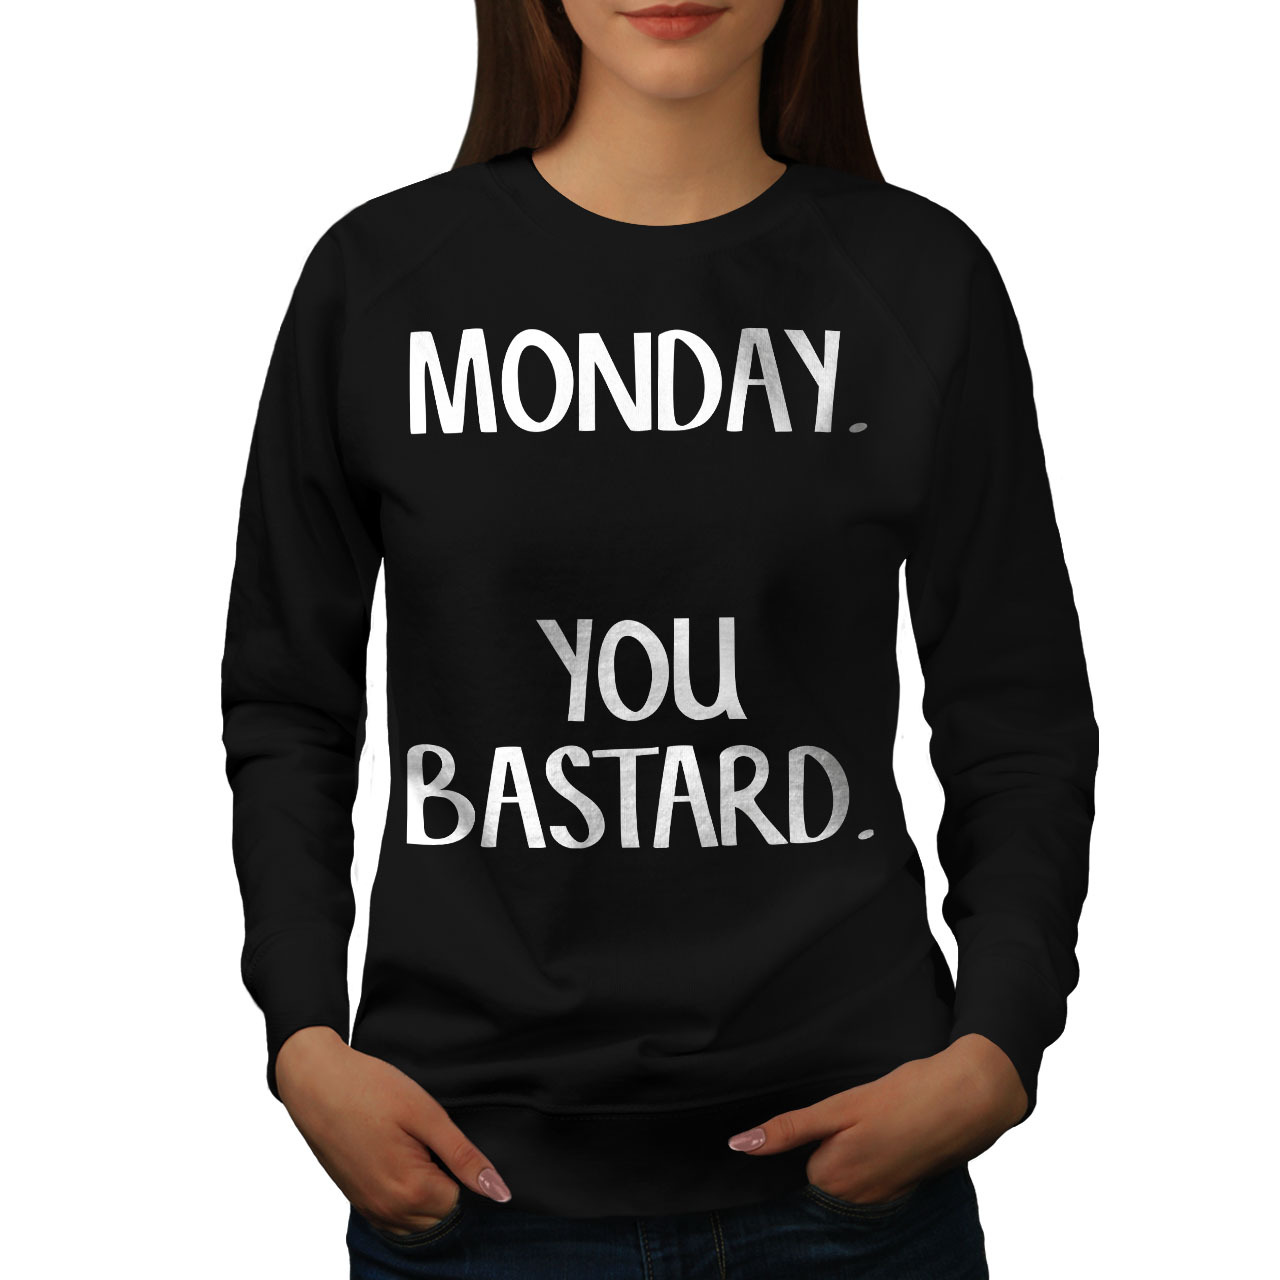 Monday You Bastard Jumper Funny Women Sweatshirt - $18.99